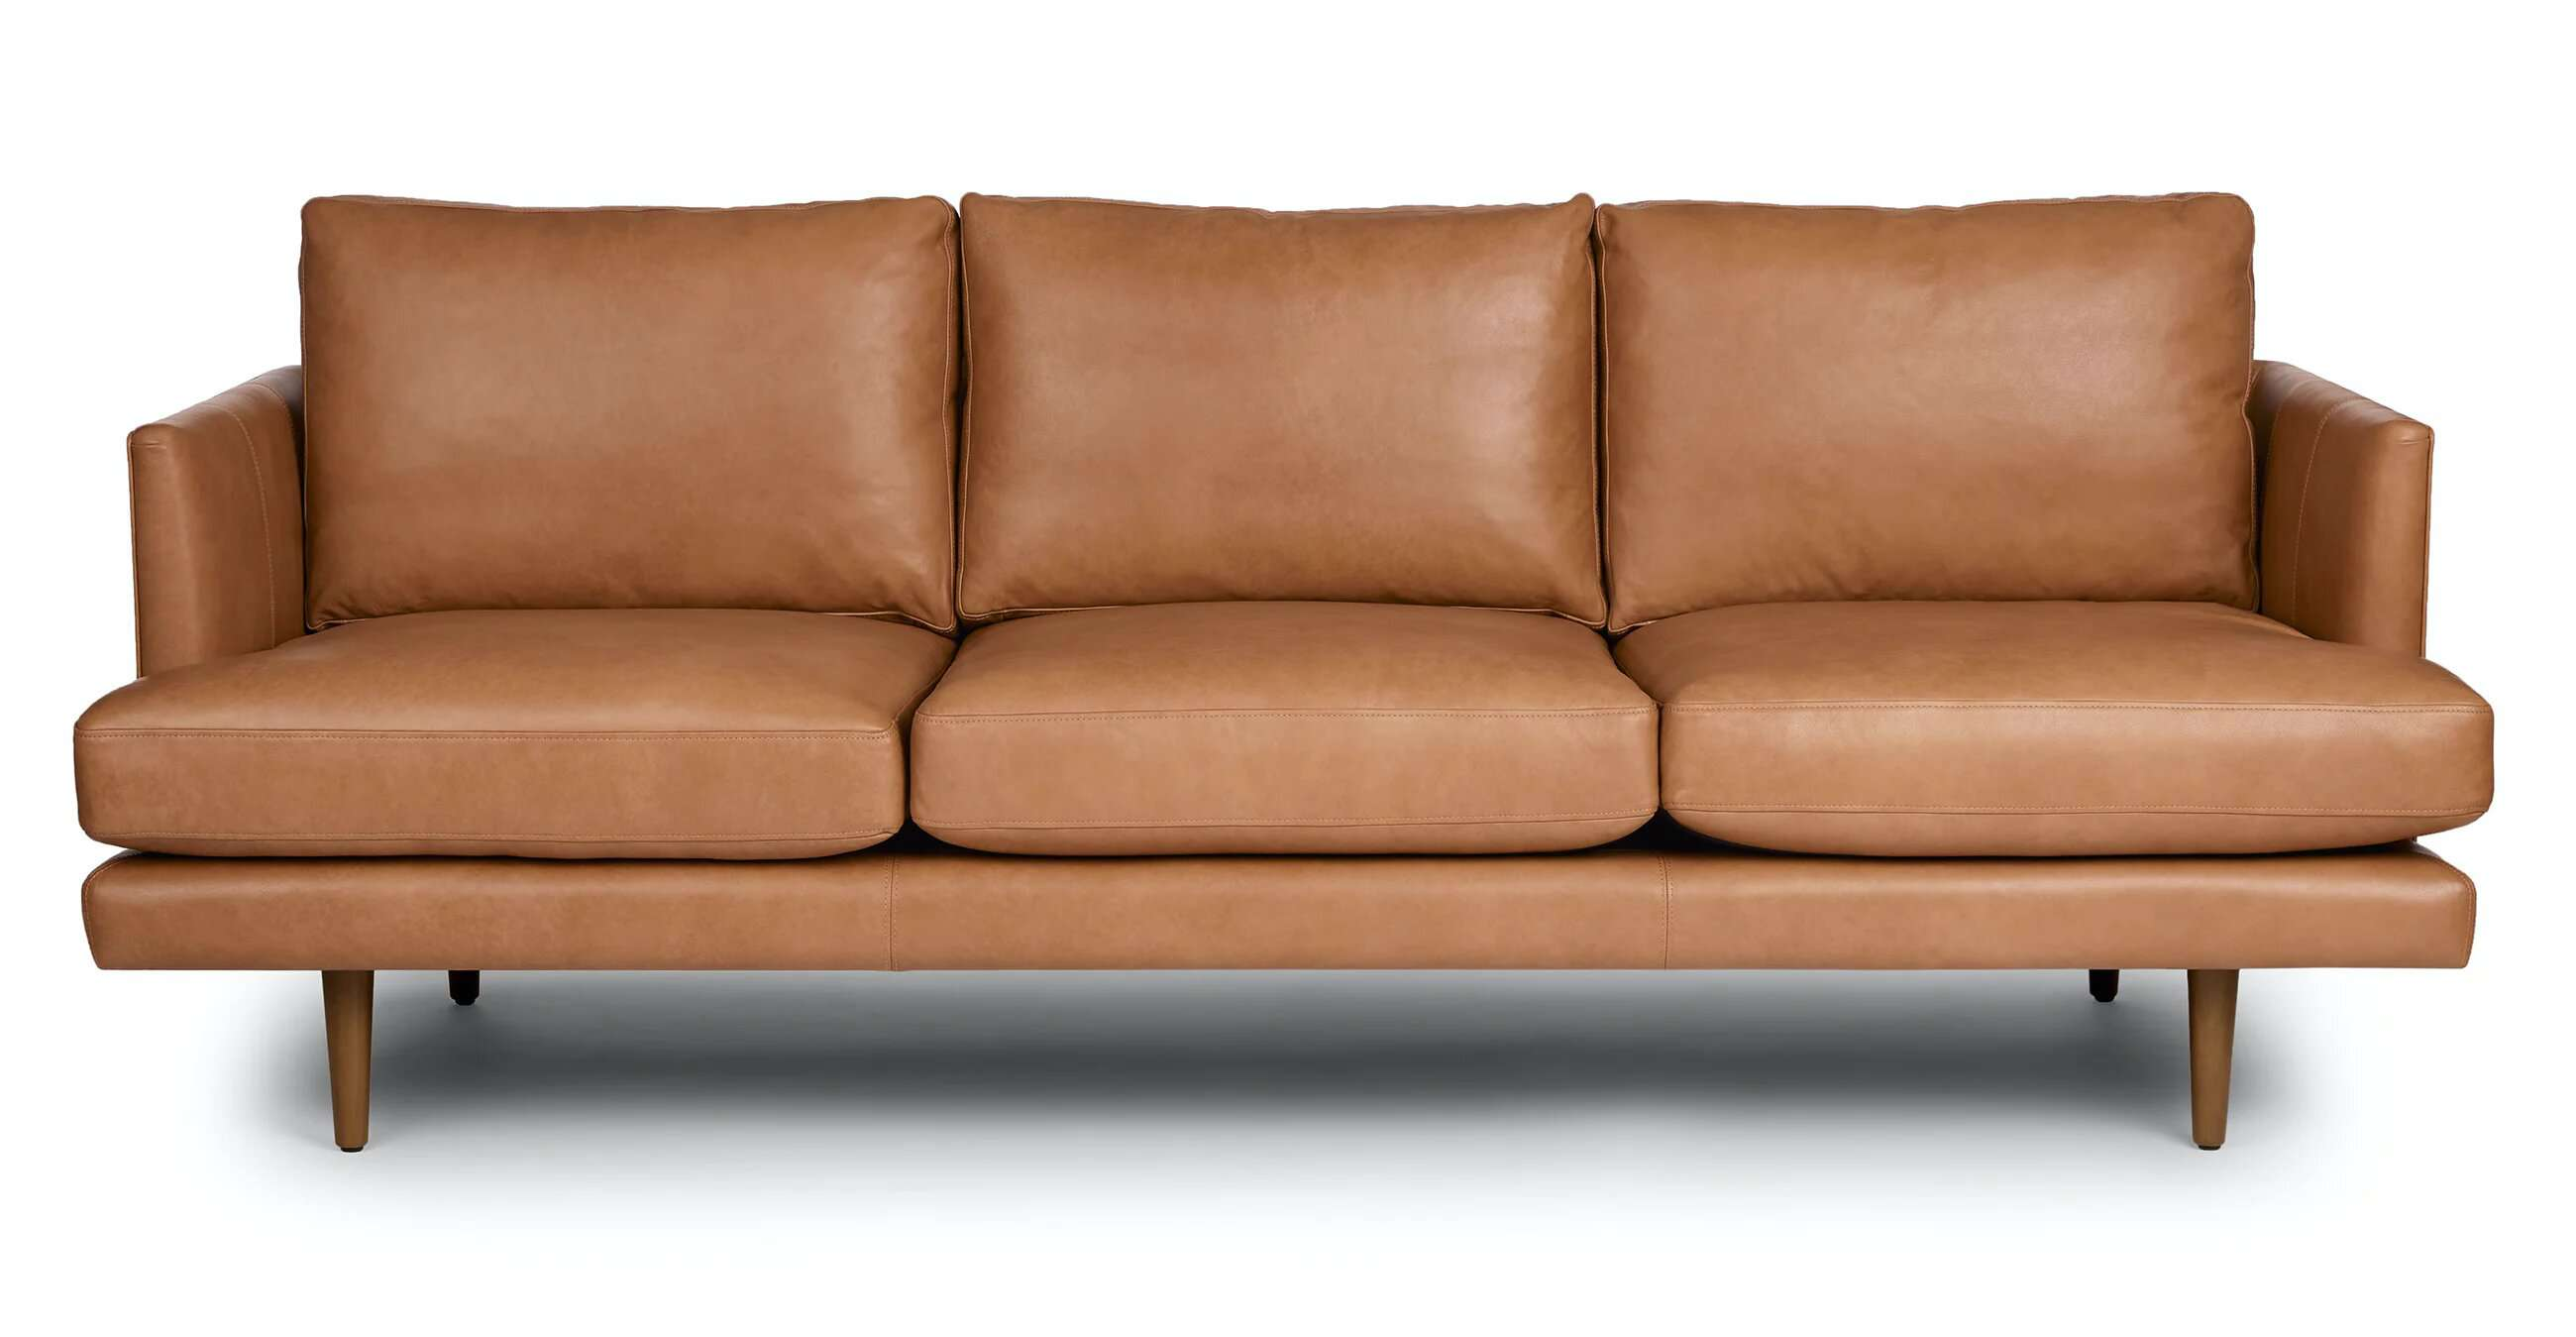 Article Burrard Leather Couch